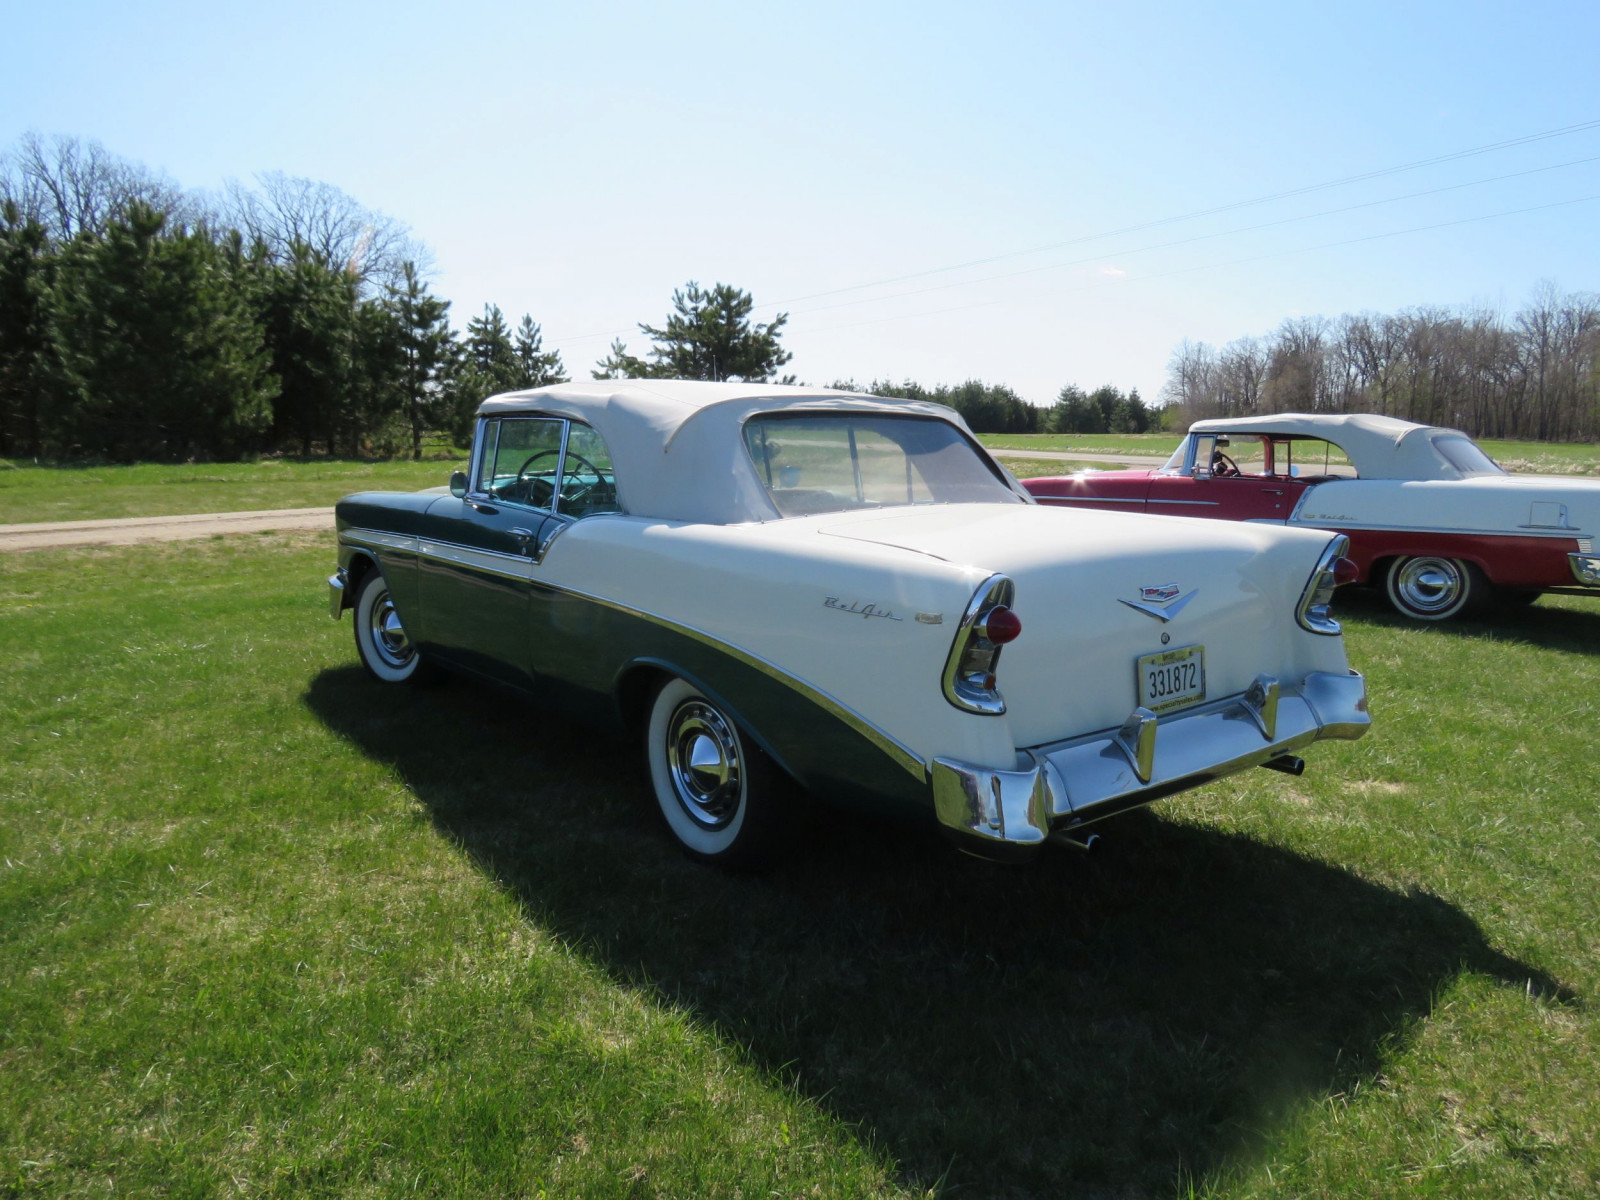 1956 Chevrolet Bel Air Convertible - Image 5